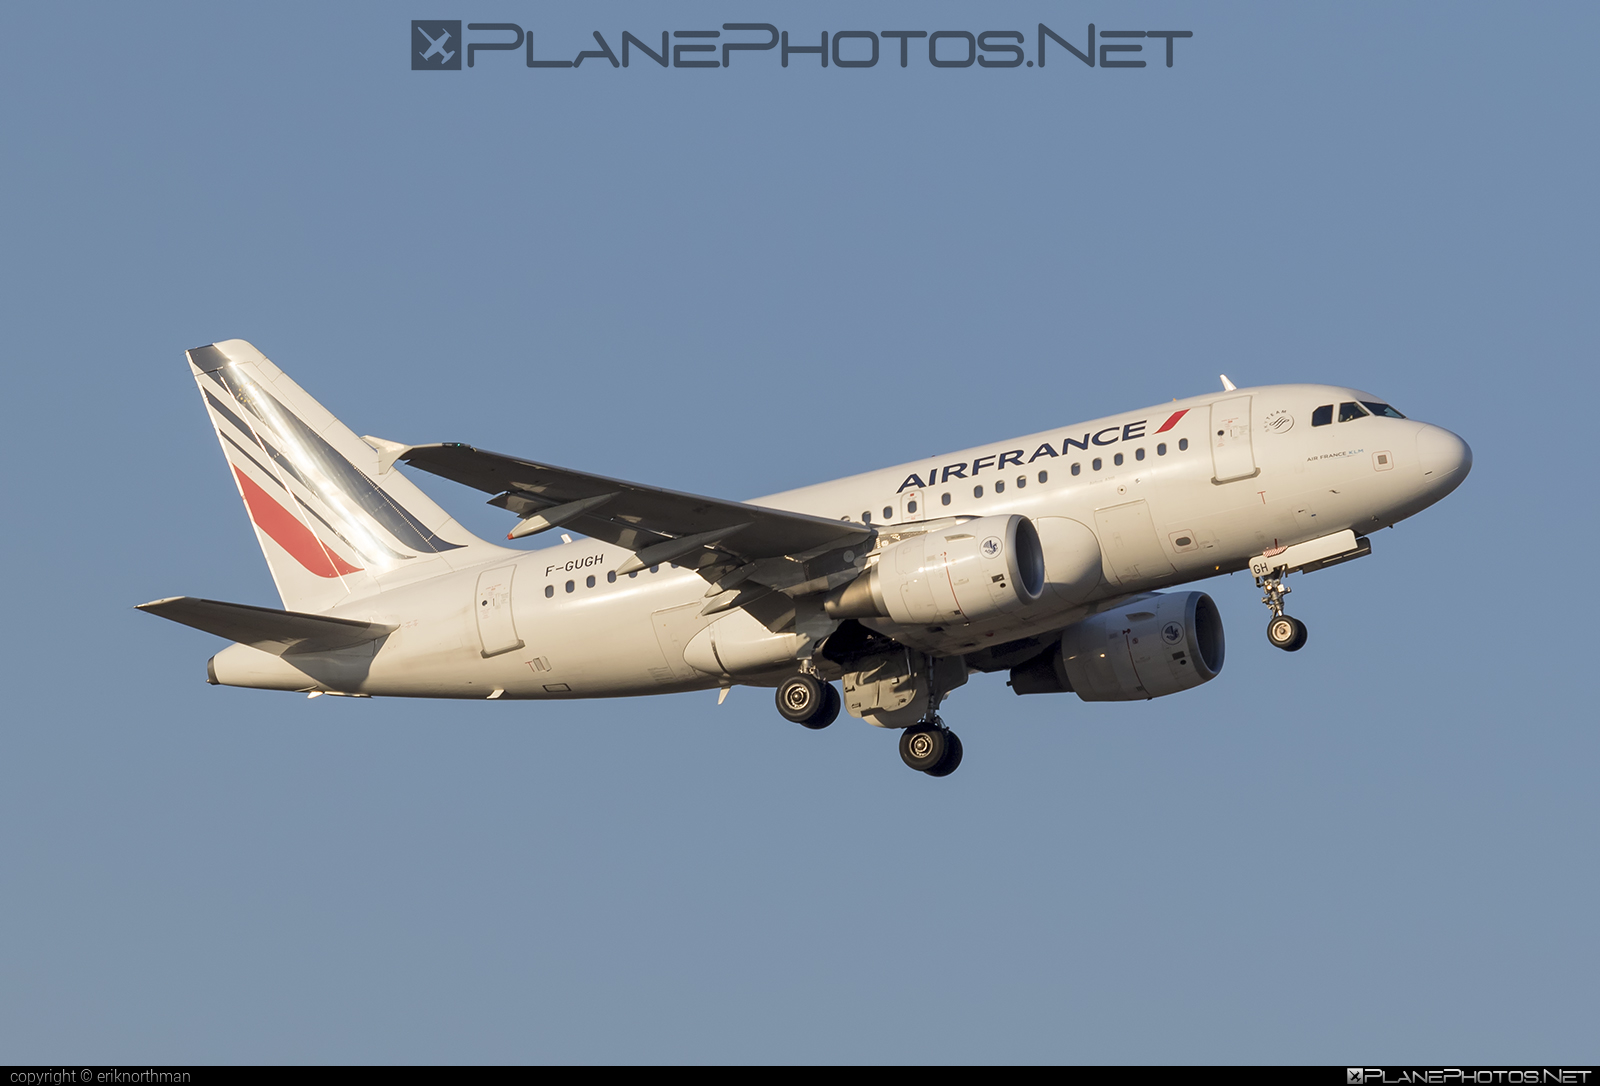 Airbus A318-111 - F-GUGH operated by Air France #a318 #a320family #airbus #airbus318 #airfrance